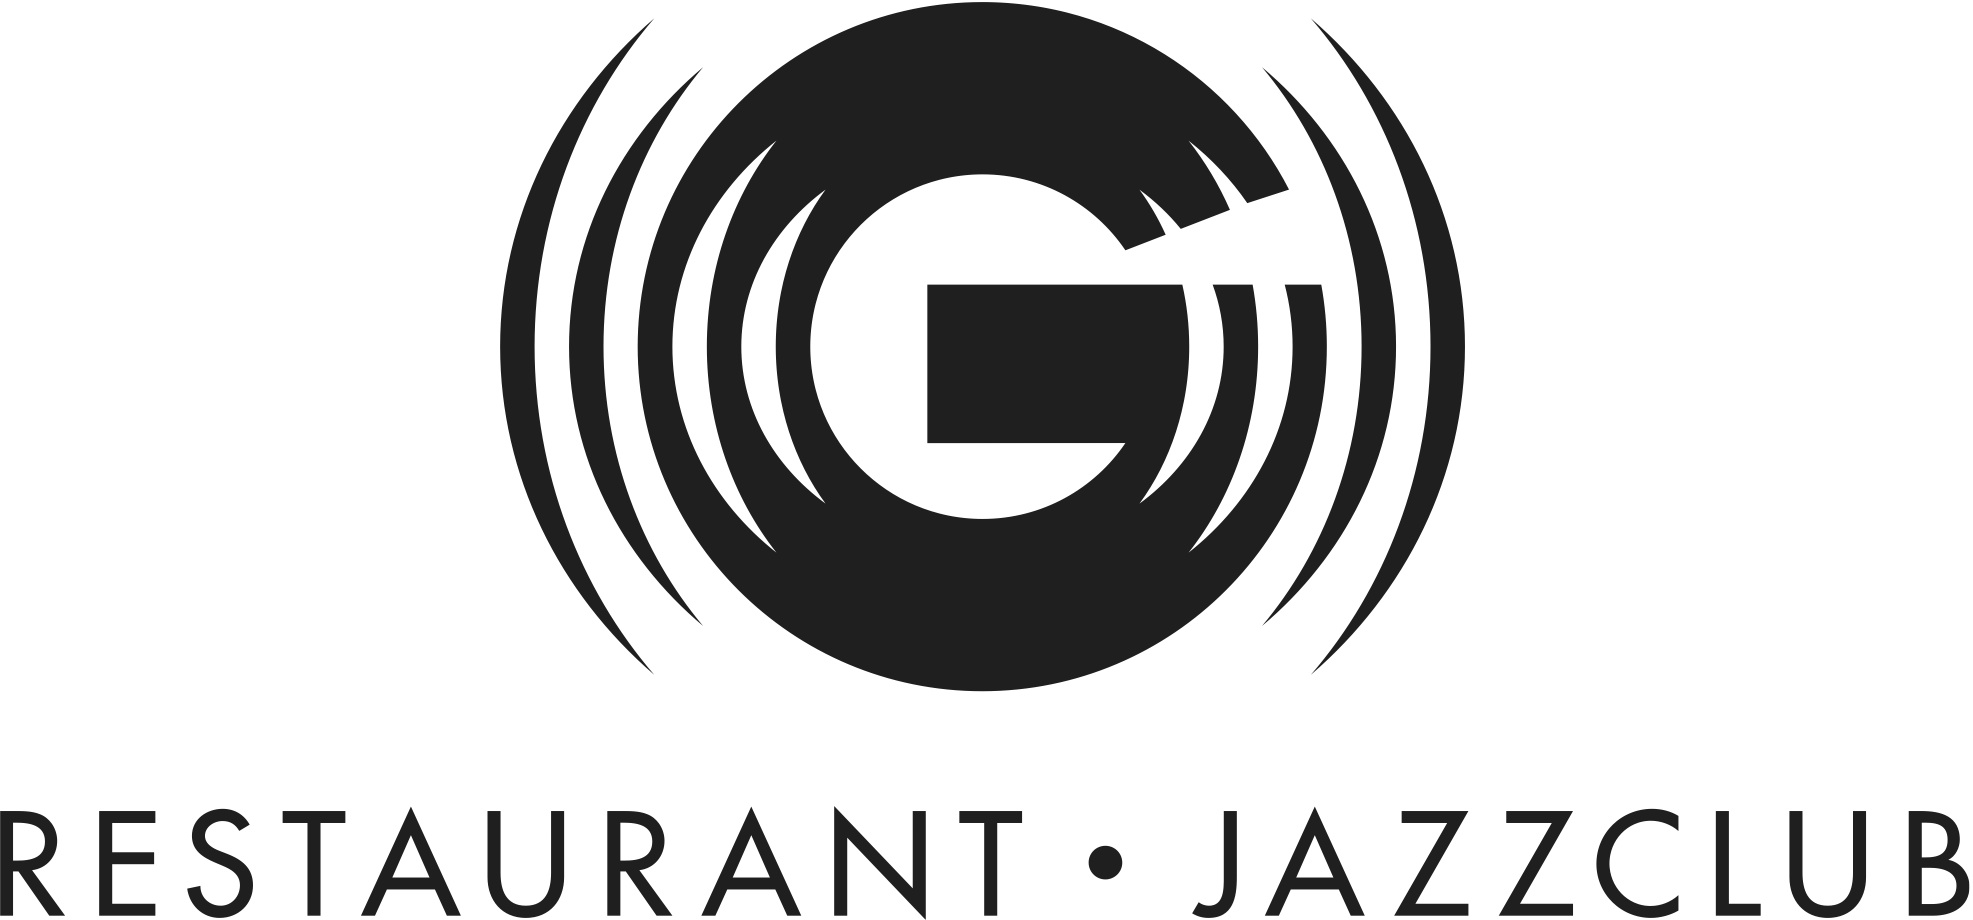 g jazzclub restaurant brands of the world